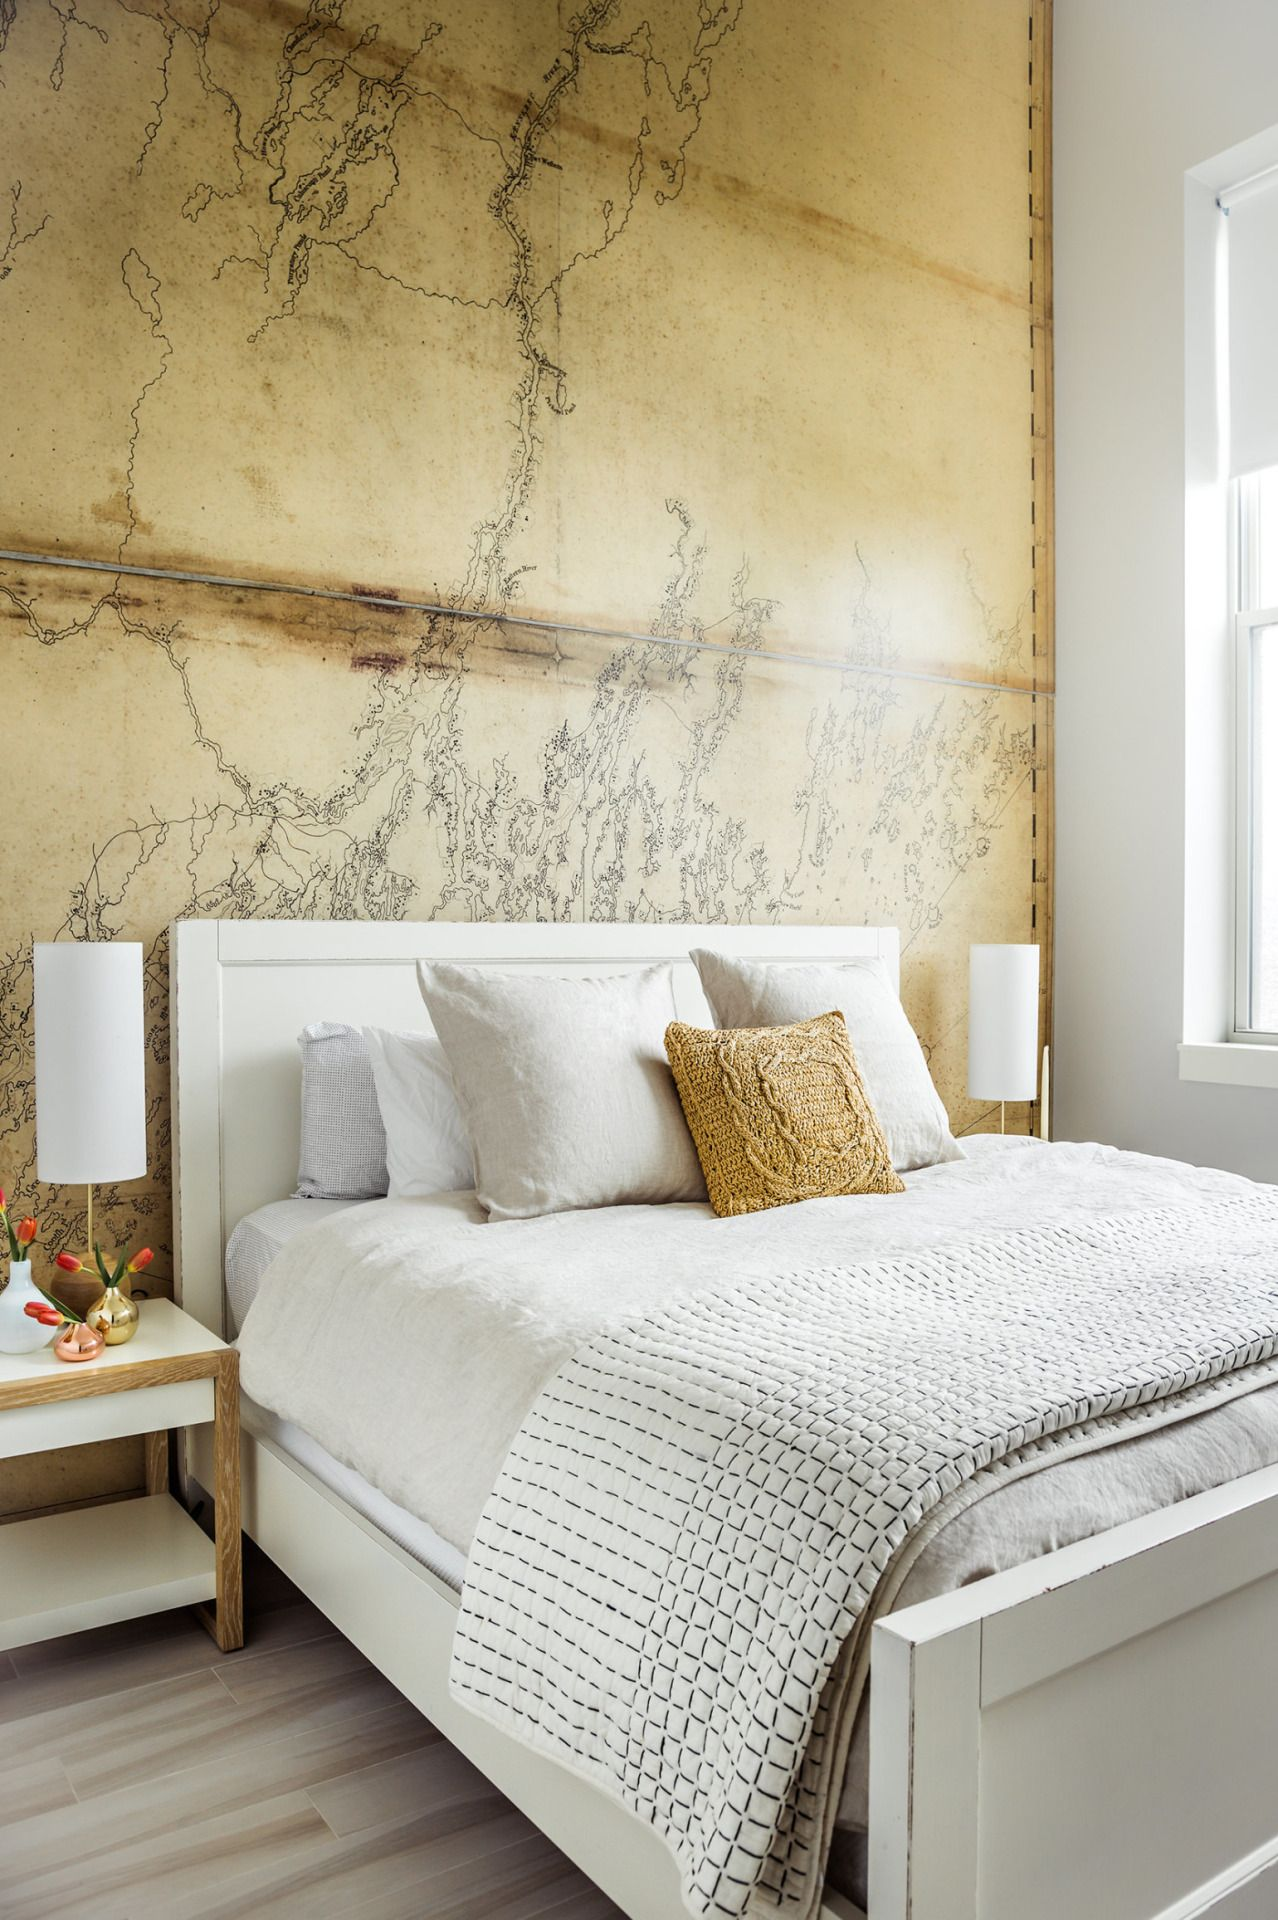 Unique & rustic accent wall behind this lovely plain bed ...